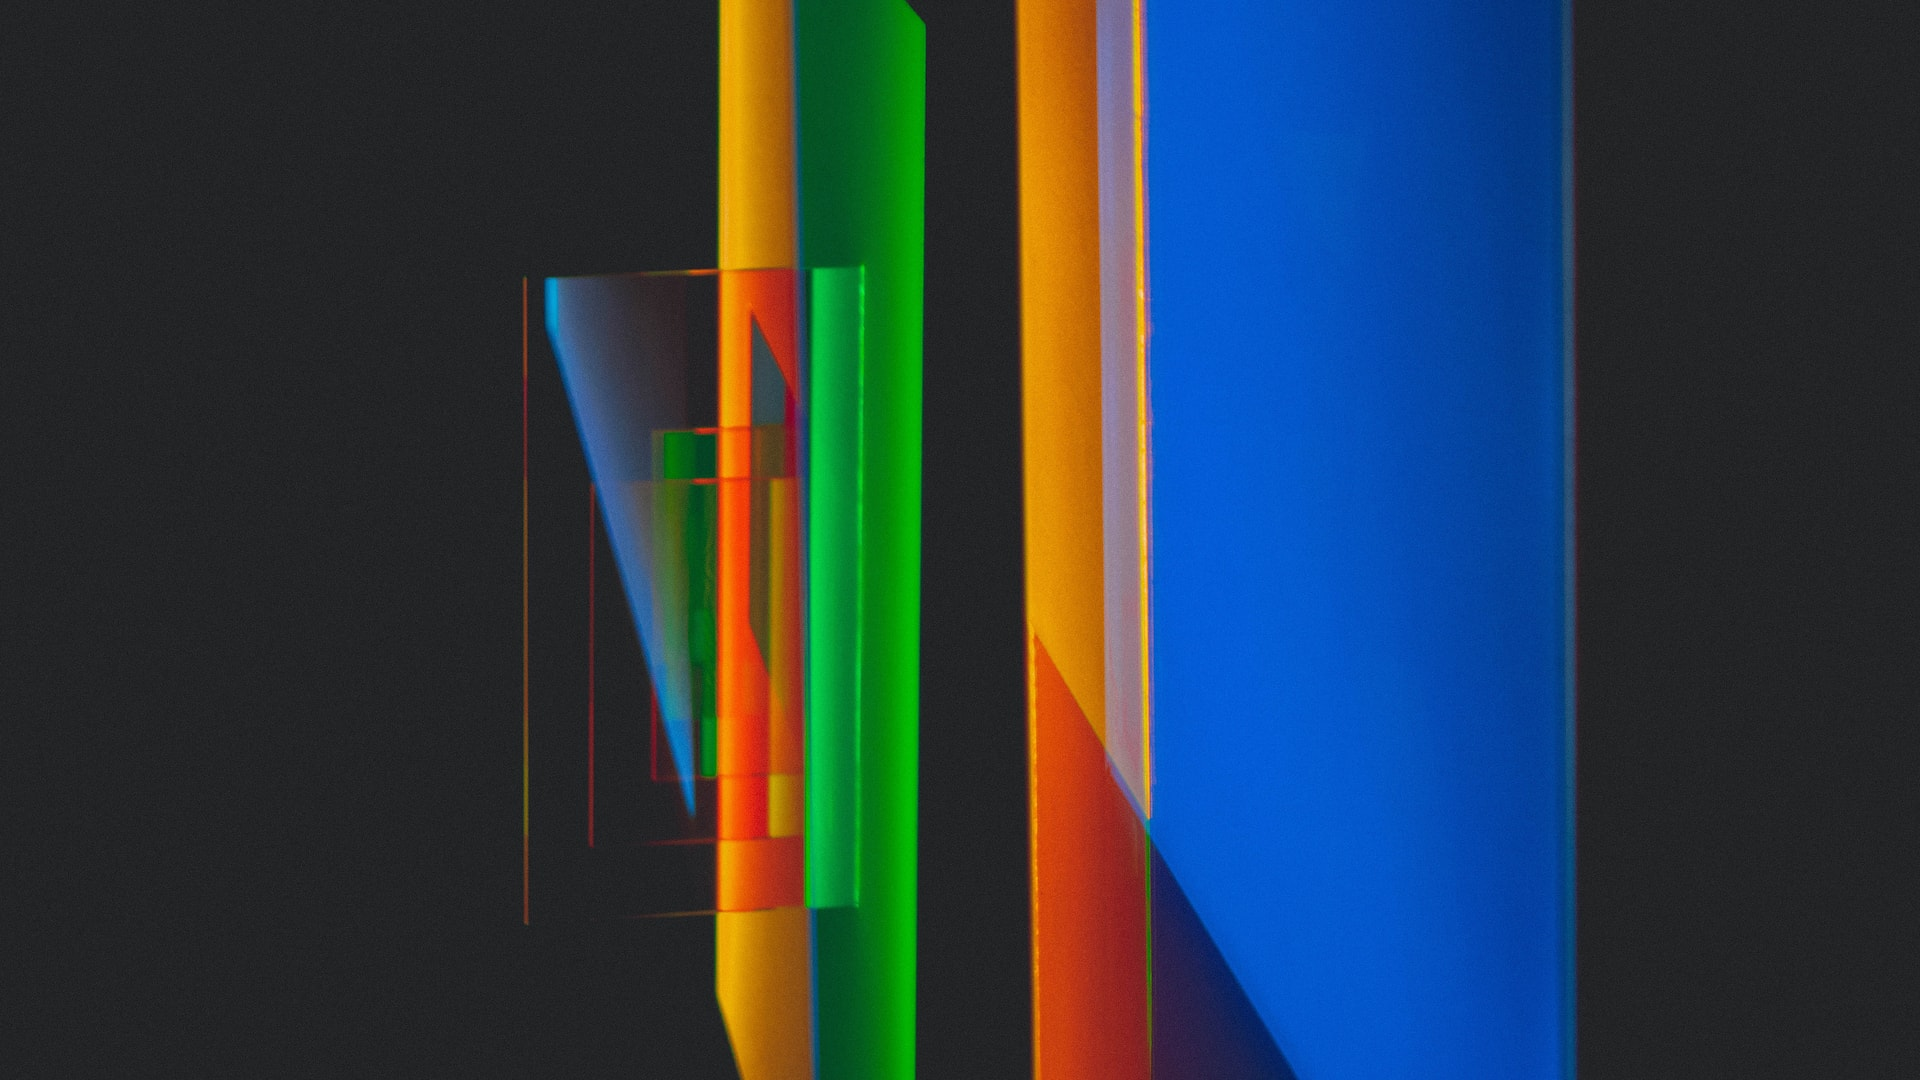 abstract-image-of-colors